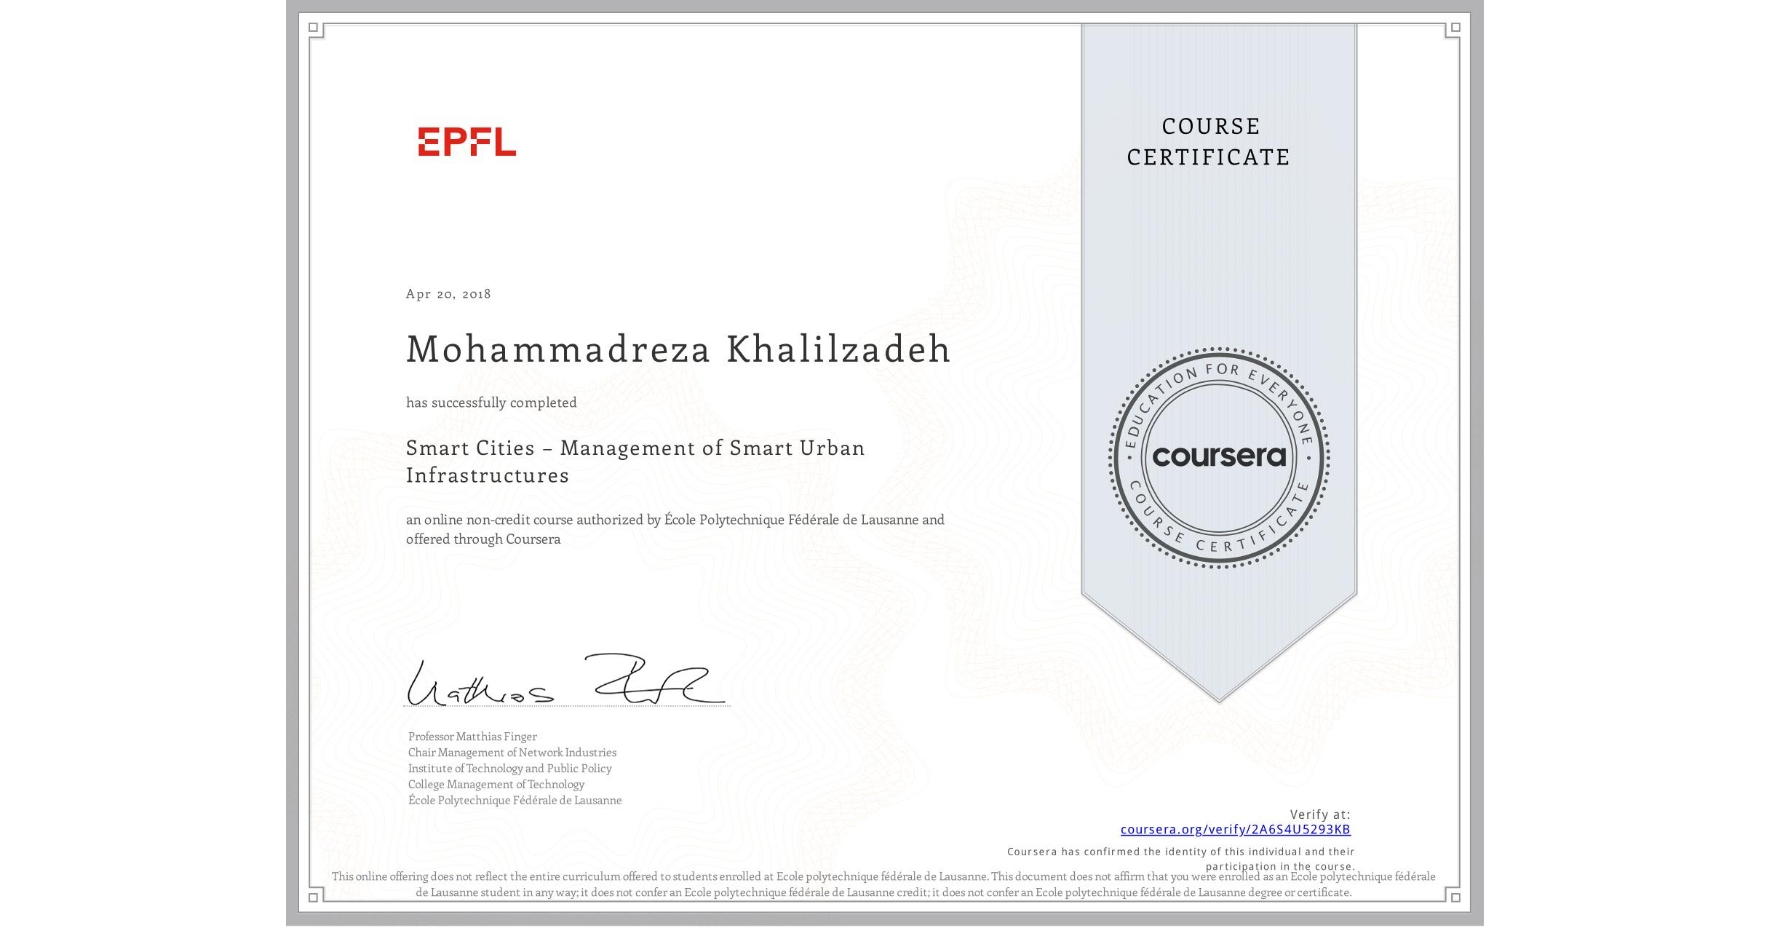 View certificate for Mohammadreza Khalilzadeh, Smart Cities – Management of Smart Urban Infrastructures, an online non-credit course authorized by École Polytechnique Fédérale de Lausanne and offered through Coursera